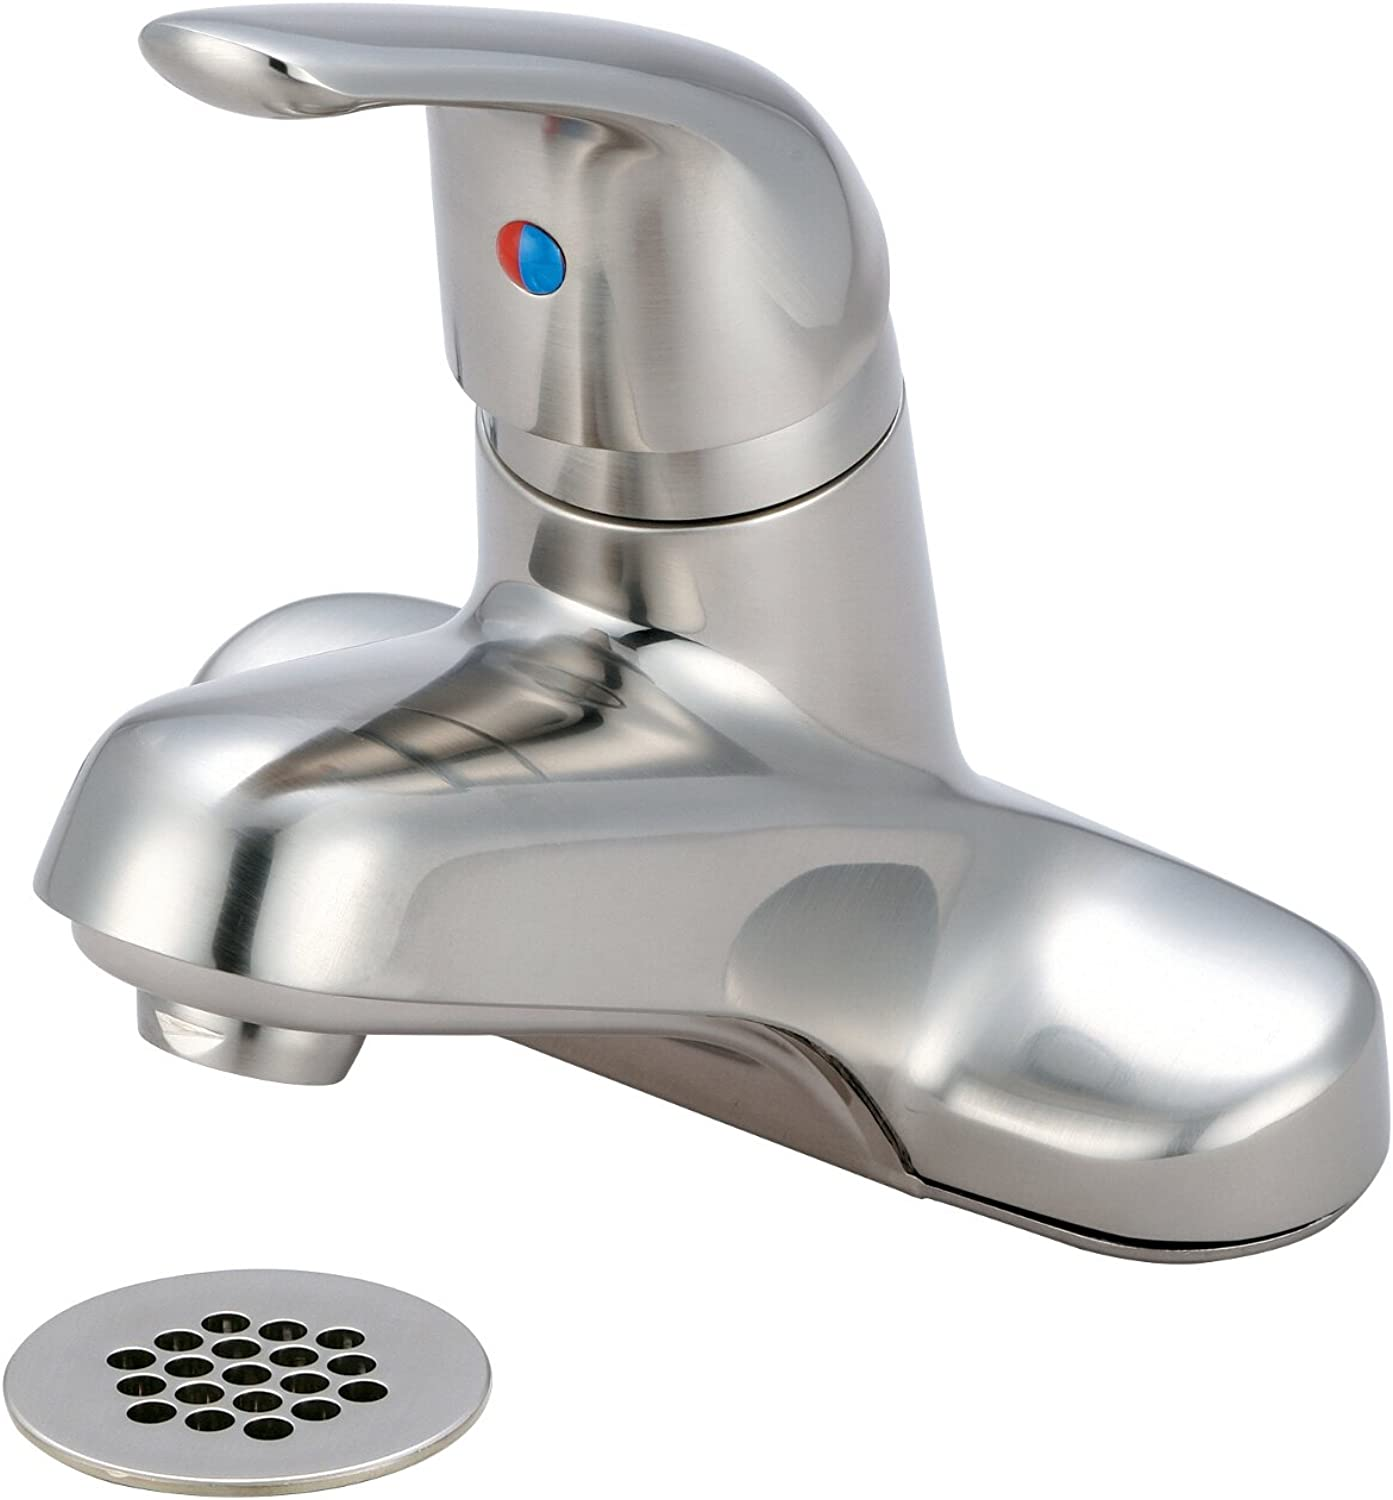 Olympia Faucets L-6161G-BN Single Handle Lavatory Faucet, PVD Brushed Nickel Finish